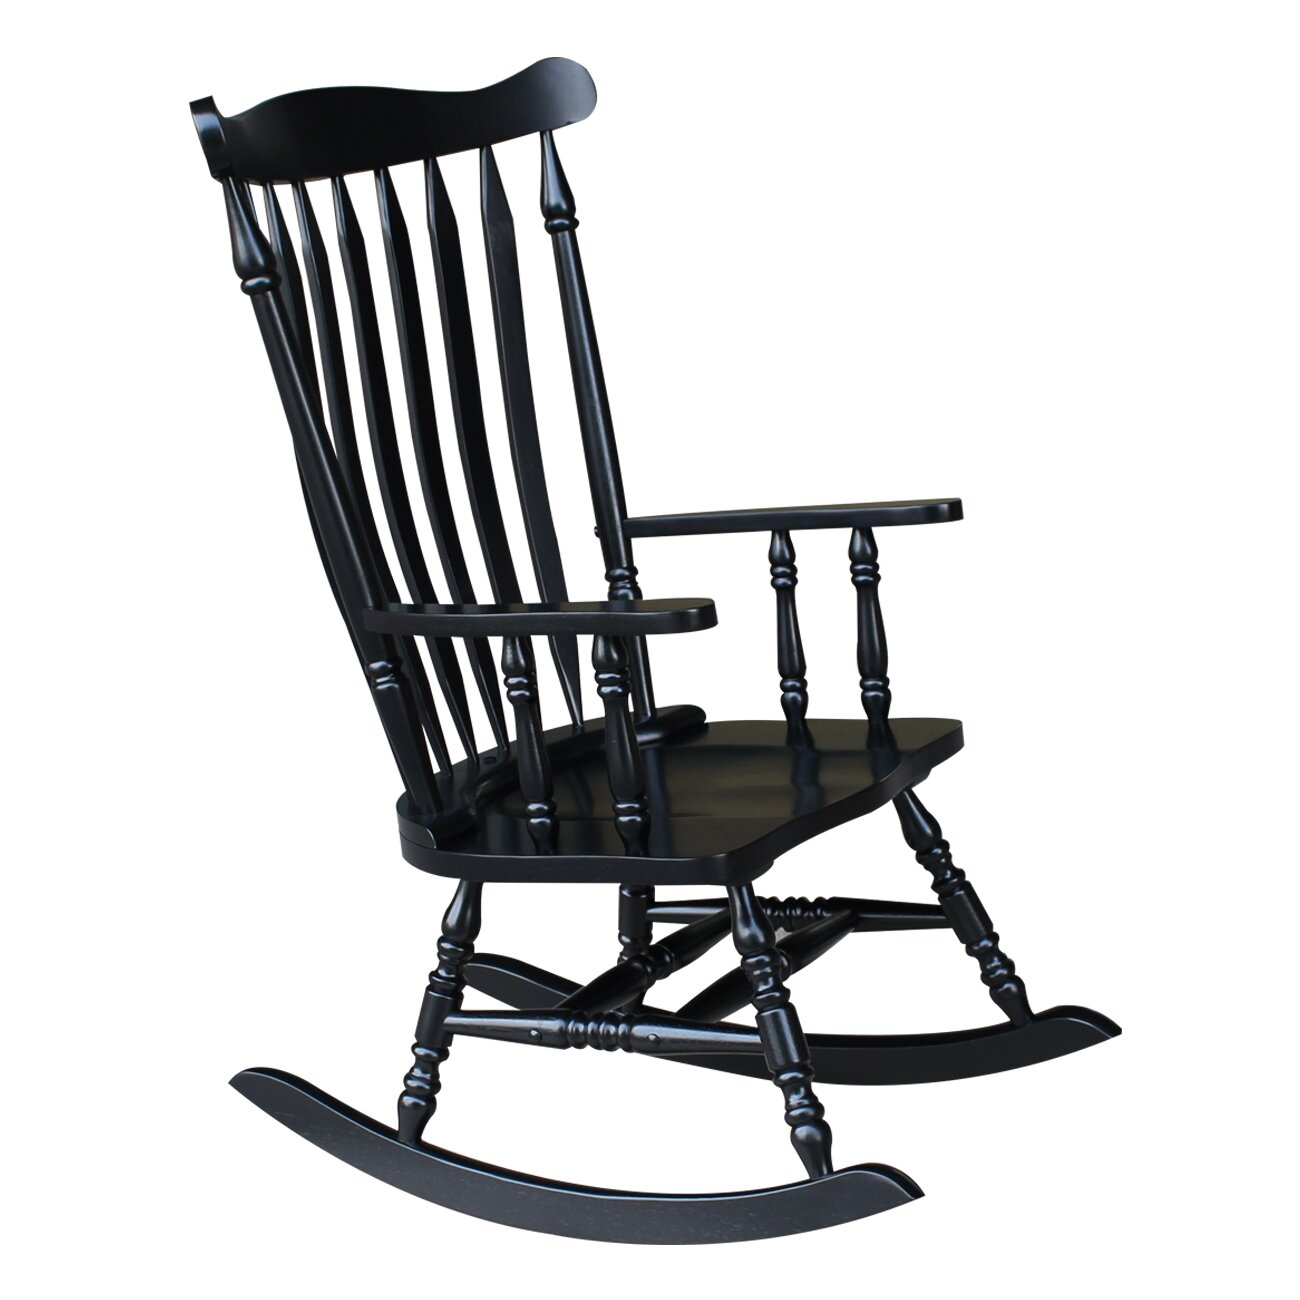 Windsor Rocking Chair - Rocking chair